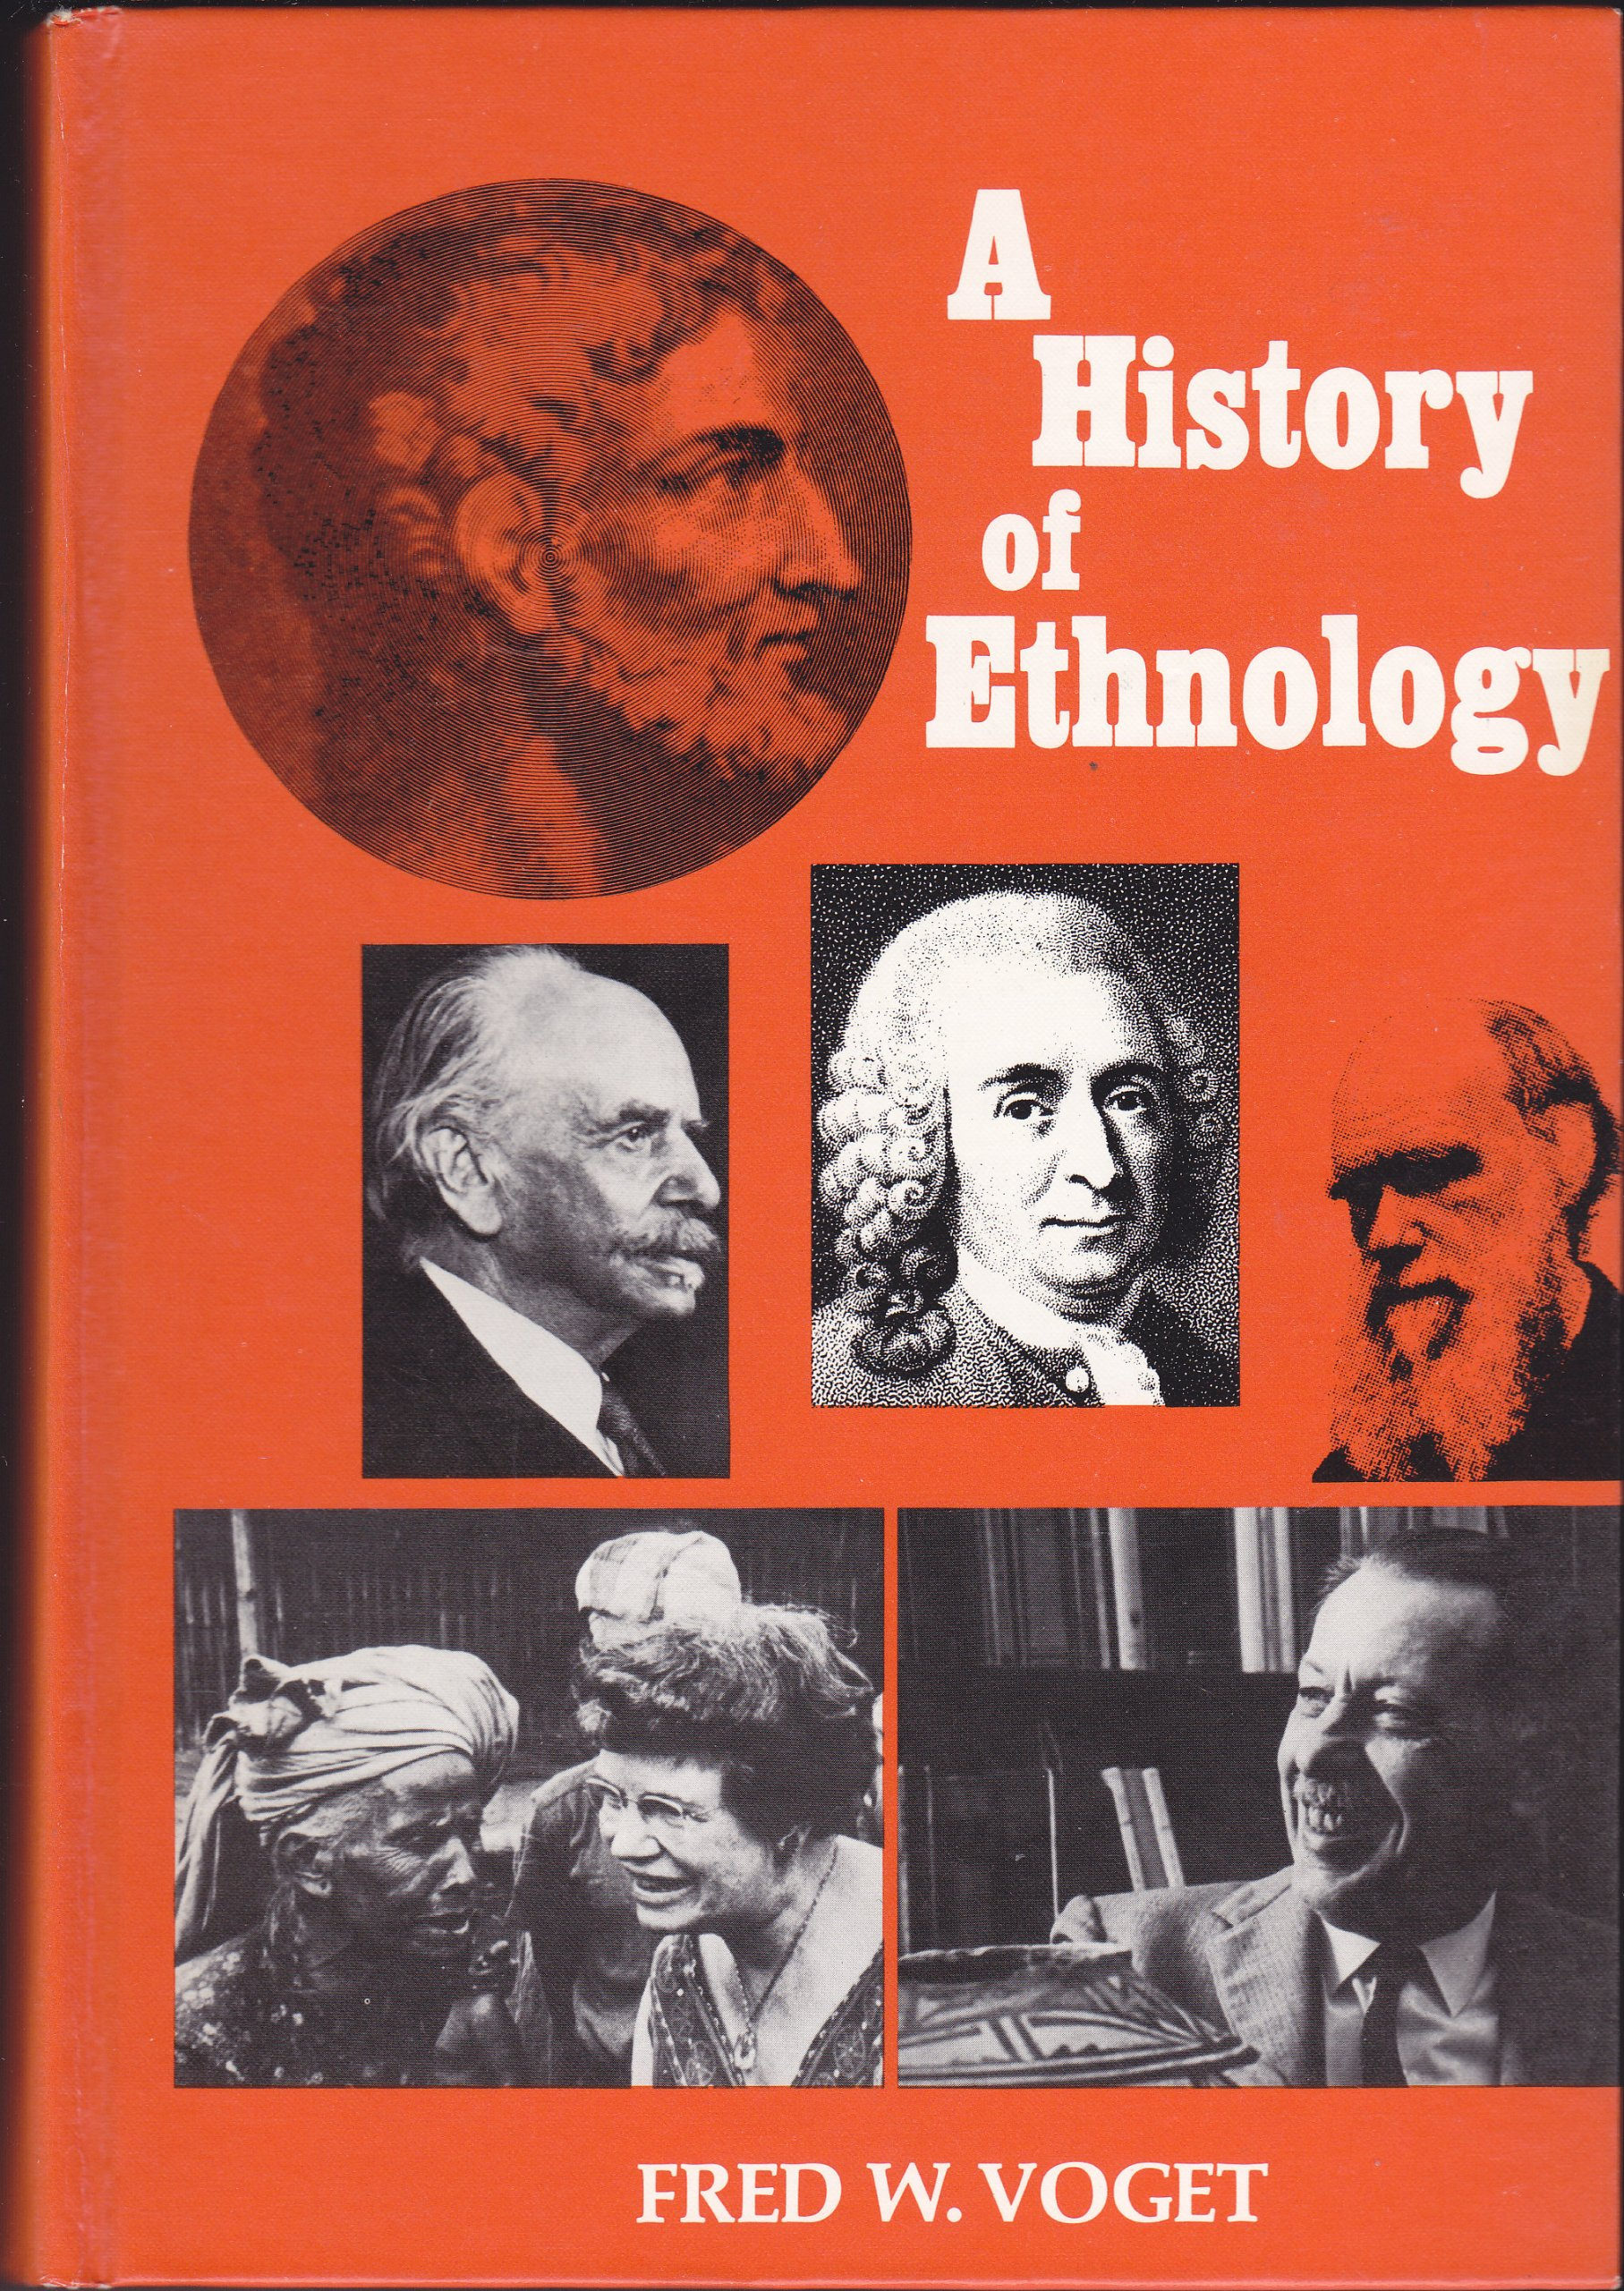 A History of Ethnology